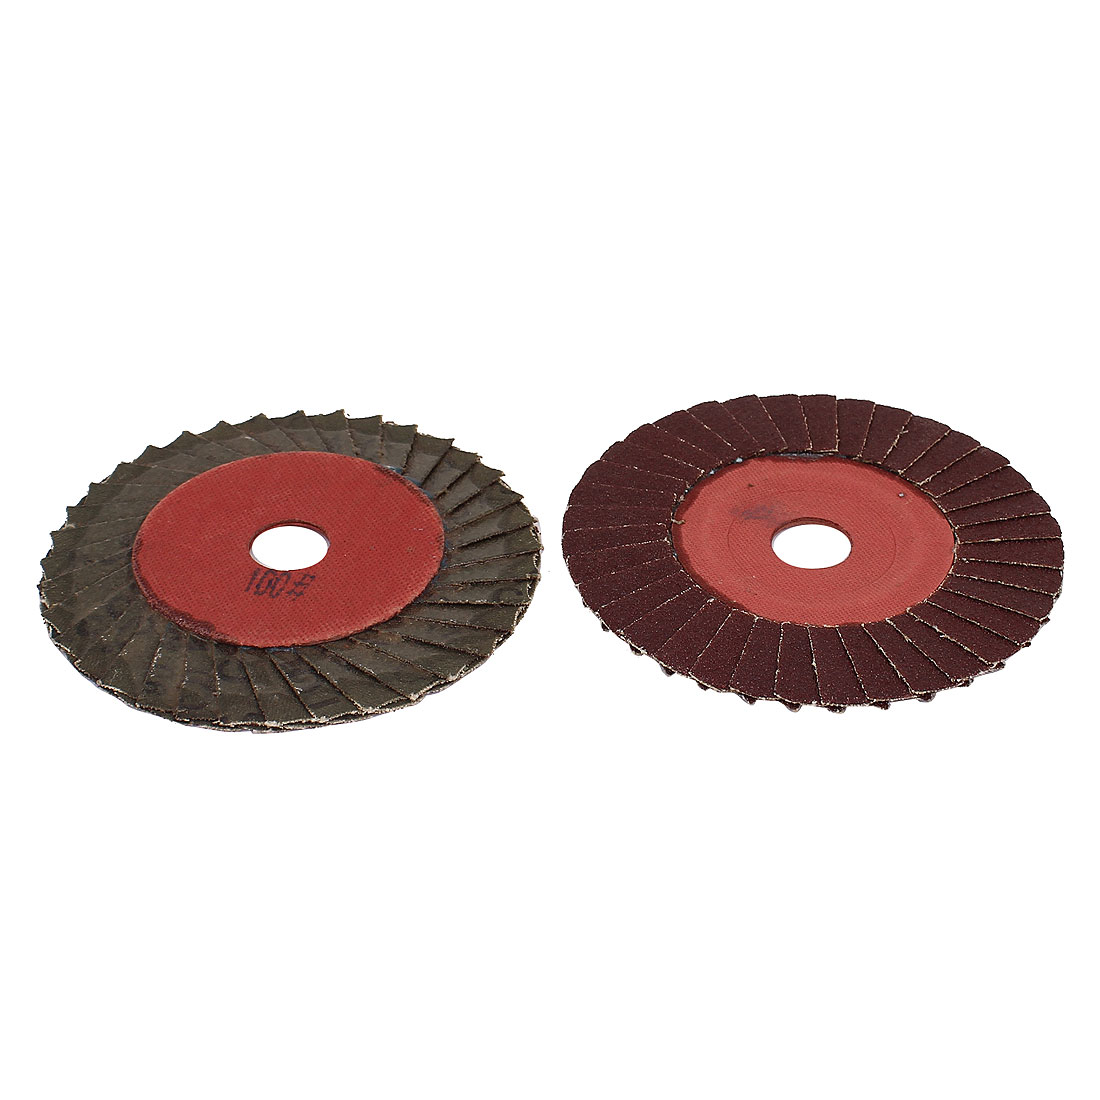 2 Pcs 100mmx16mm Abrasives Sanding Flap Disc Grinding Wheel 100 Grit